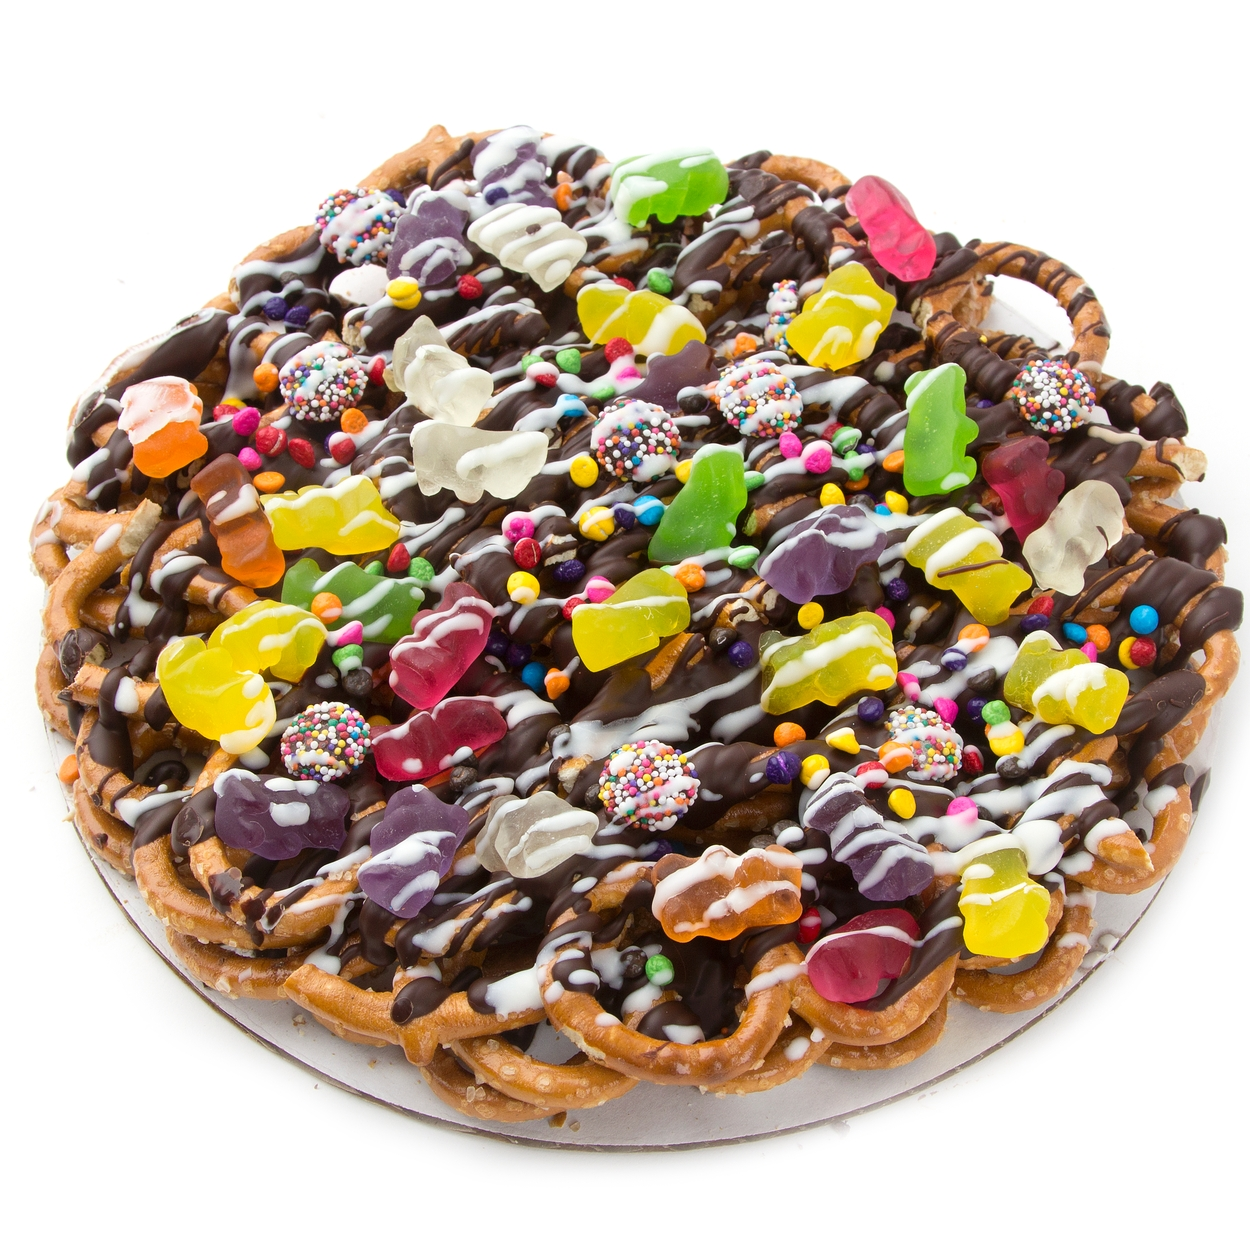 Chocolate Pretzel Pie With Gummy Bears - 8 • Chocolate Pretzel ...